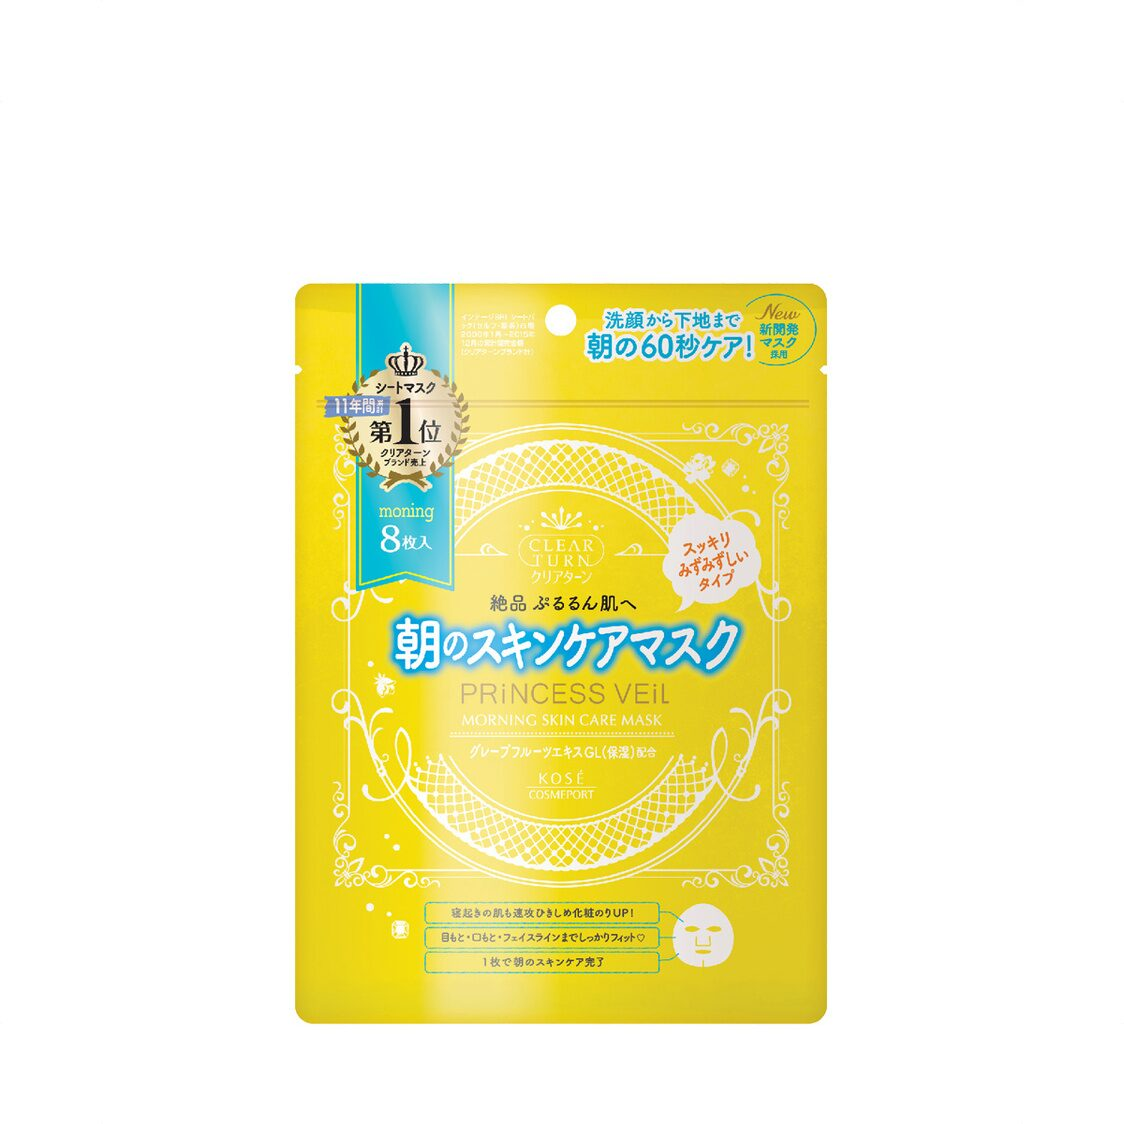 Princess Veil Morning Care Mask 8s